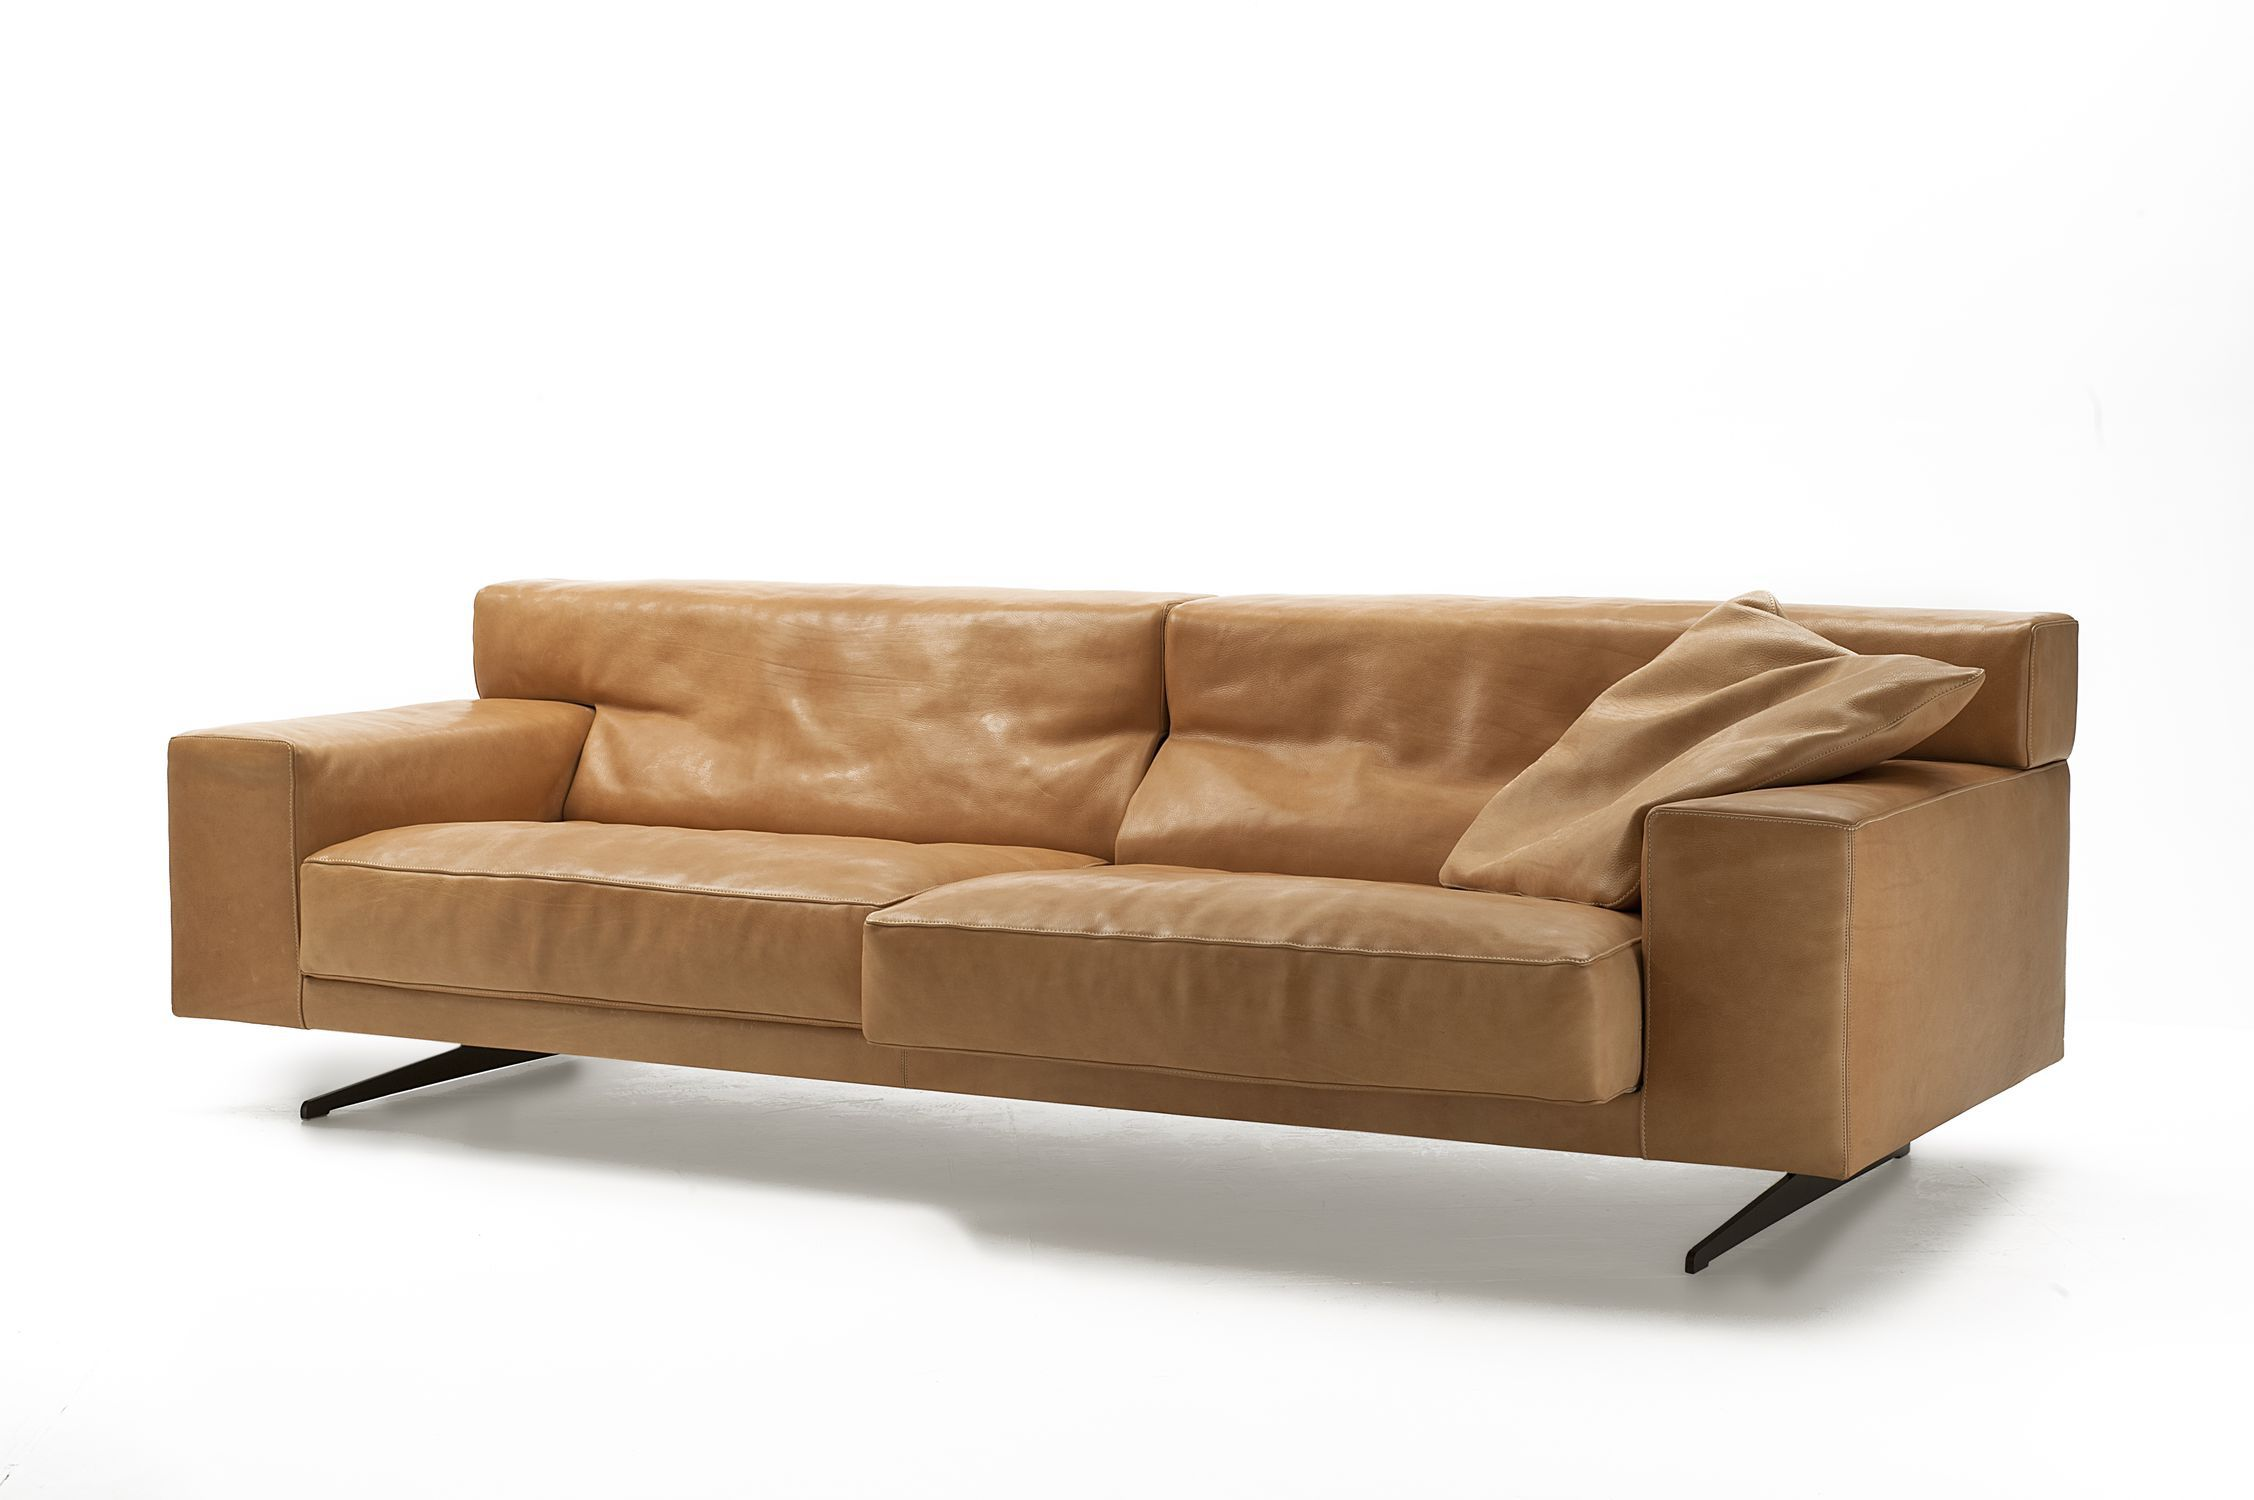 Strange Contemporary Sofa Leather 2 Person 3 Seater Mondial Ncnpc Chair Design For Home Ncnpcorg